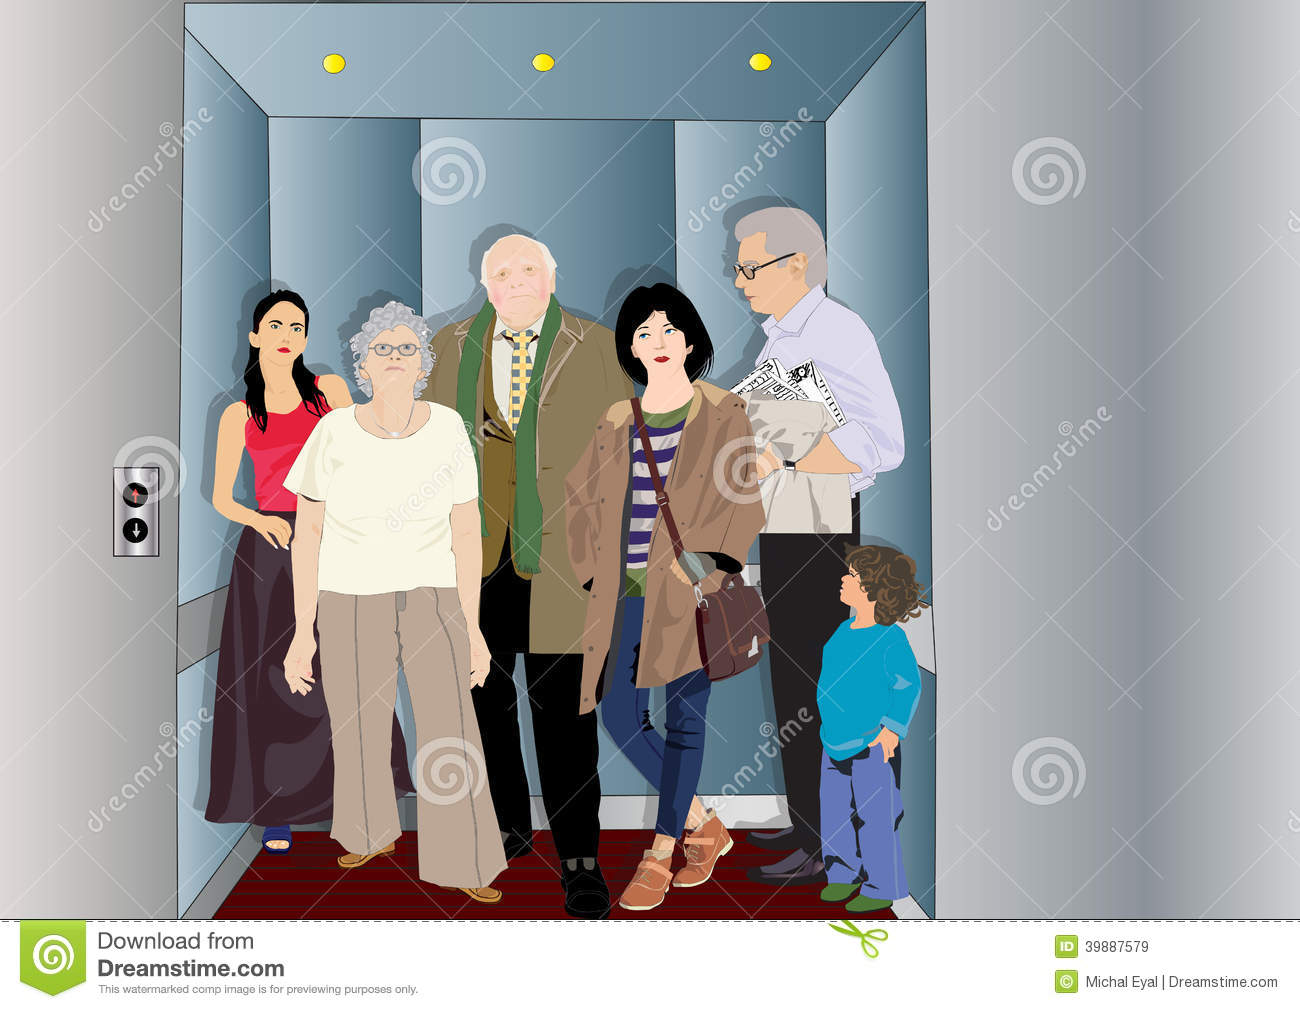 Free clipart of people in elevator image black and white stock Elevator clipart overcrowded - 34 transparent clip arts, images and ... image black and white stock